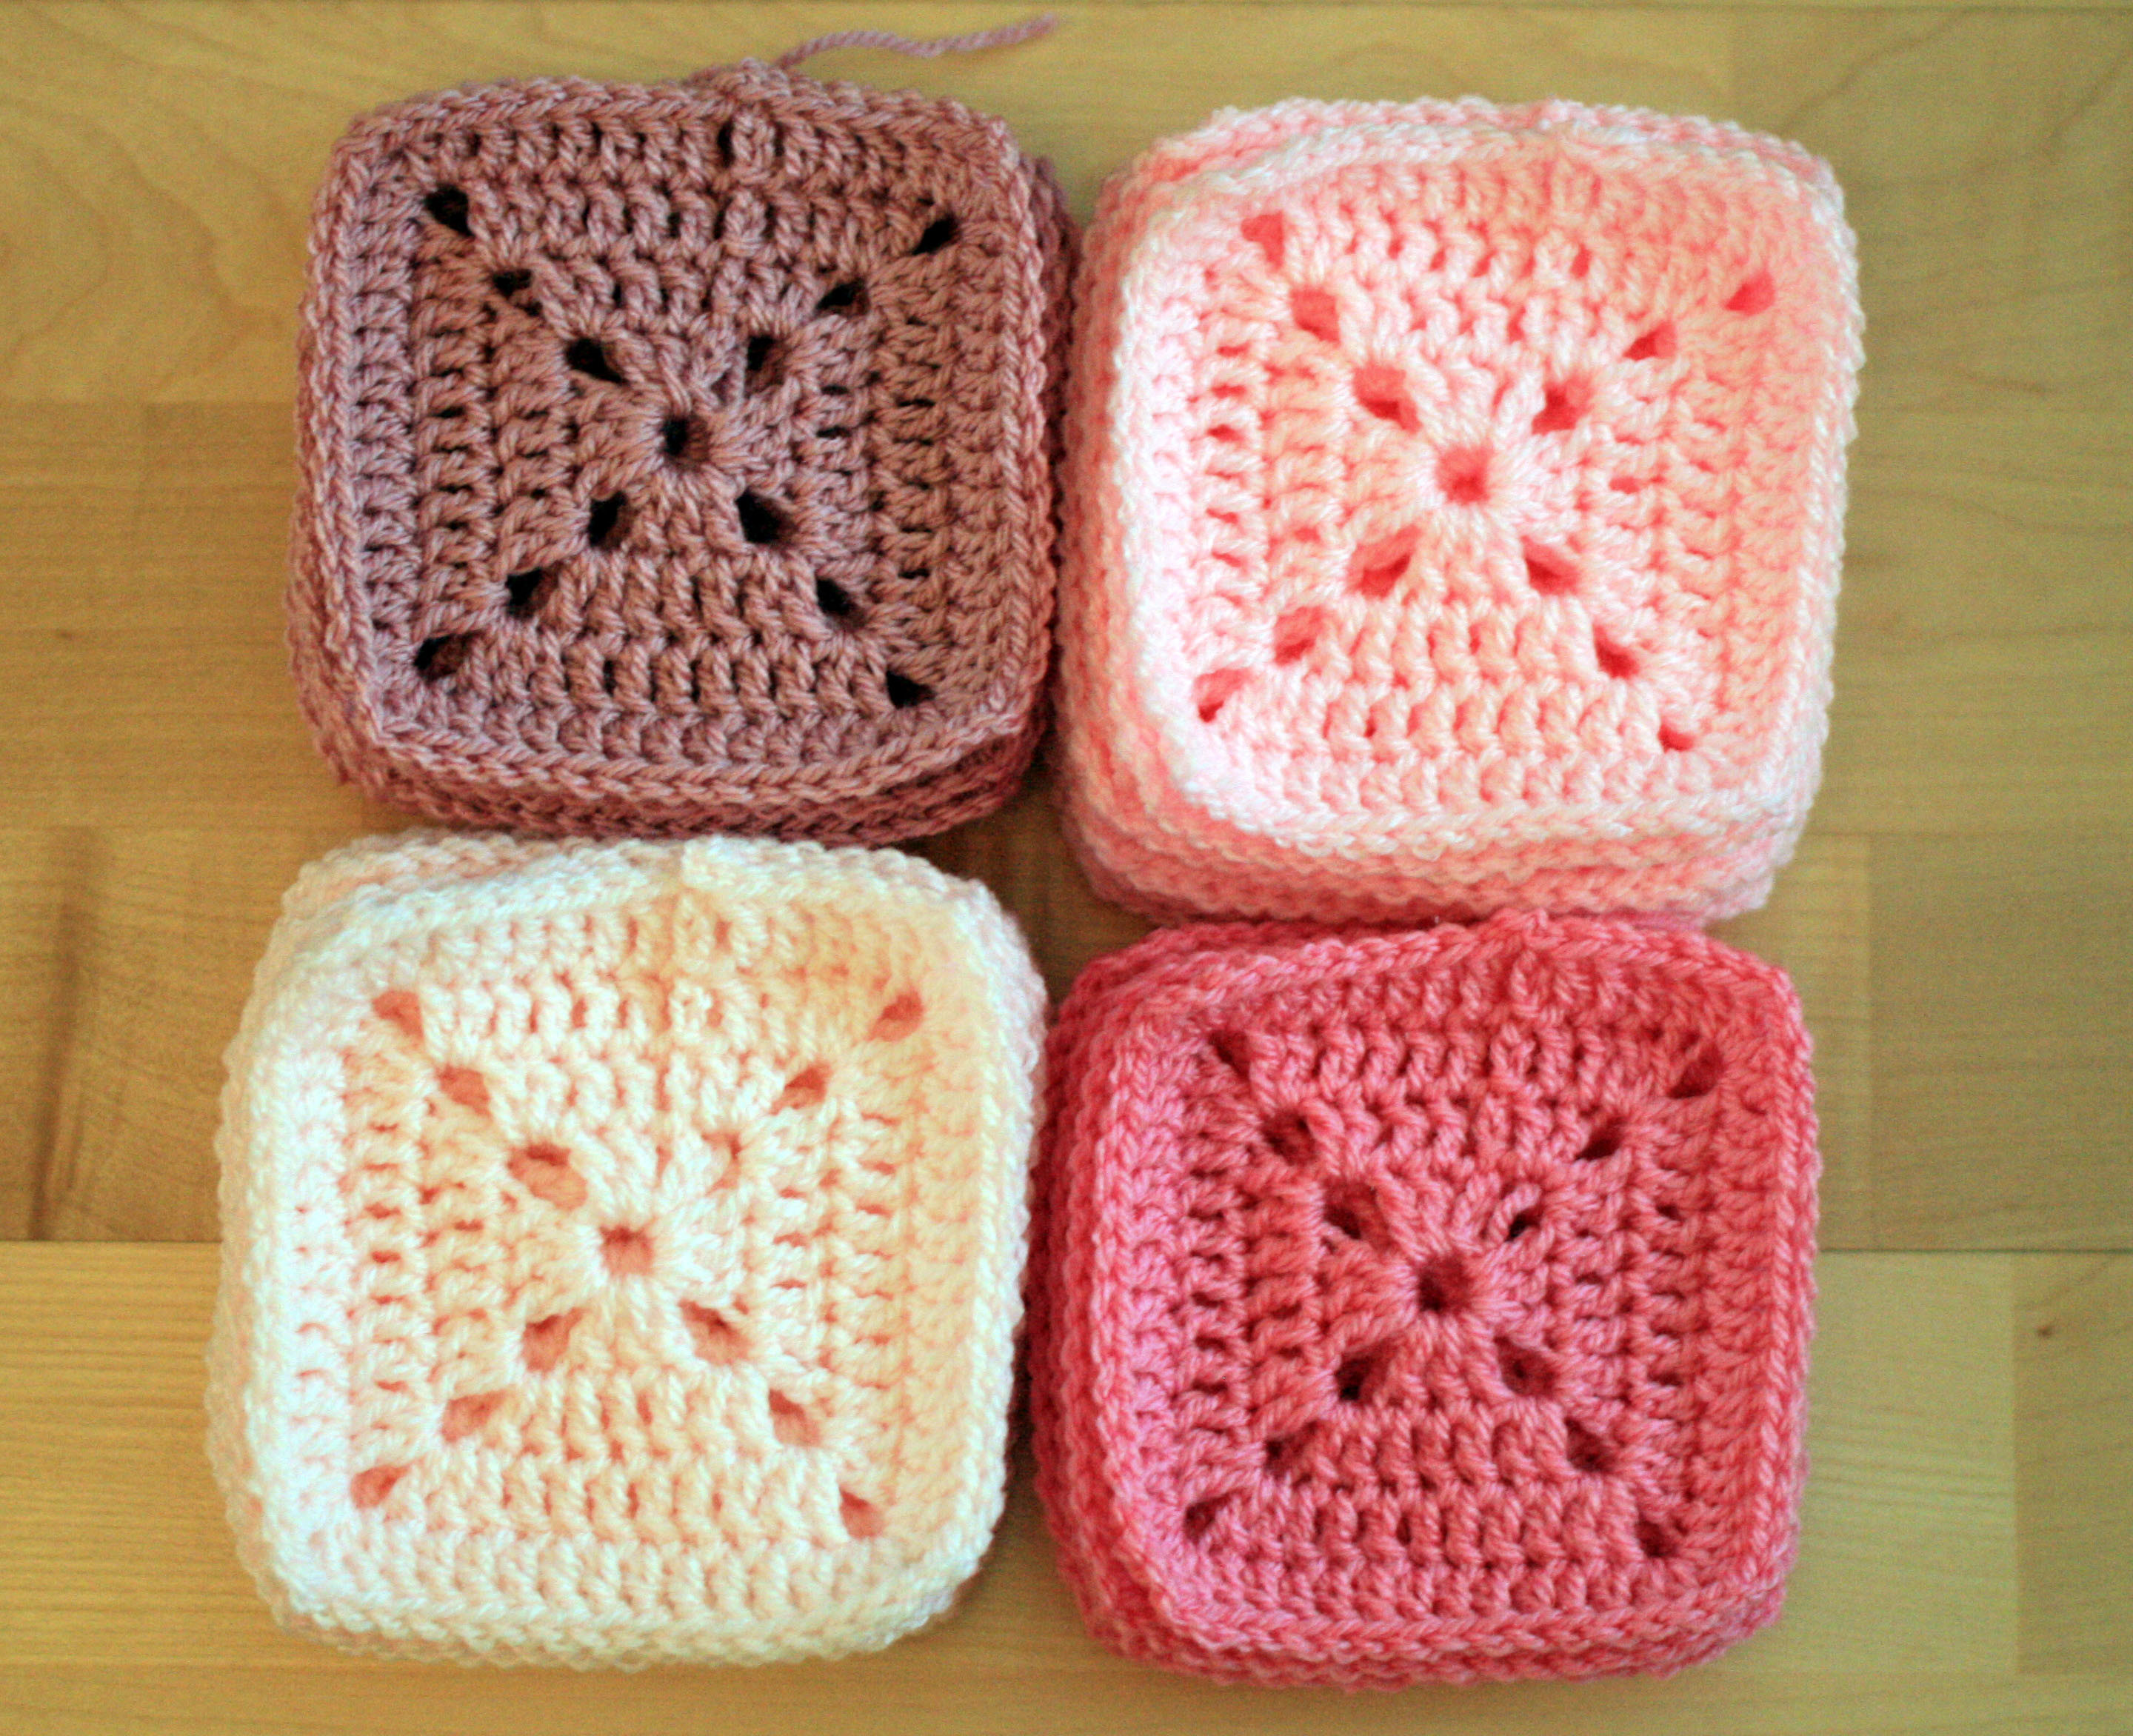 Awesome Crochet Baby Blanket Pretty In Pink Baby Blankets to Crochet Of Amazing 46 Images Baby Blankets to Crochet